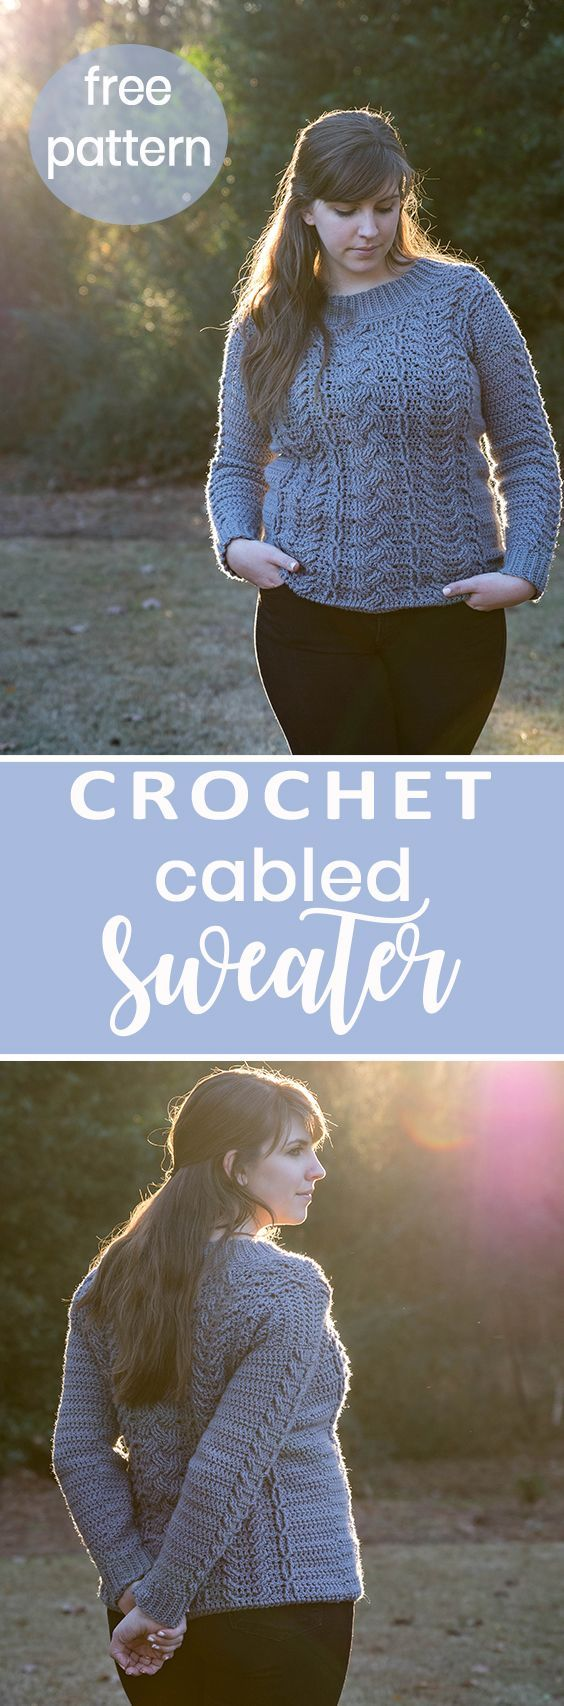 Crochet Heirloom Cabled Sweater • Sewrella